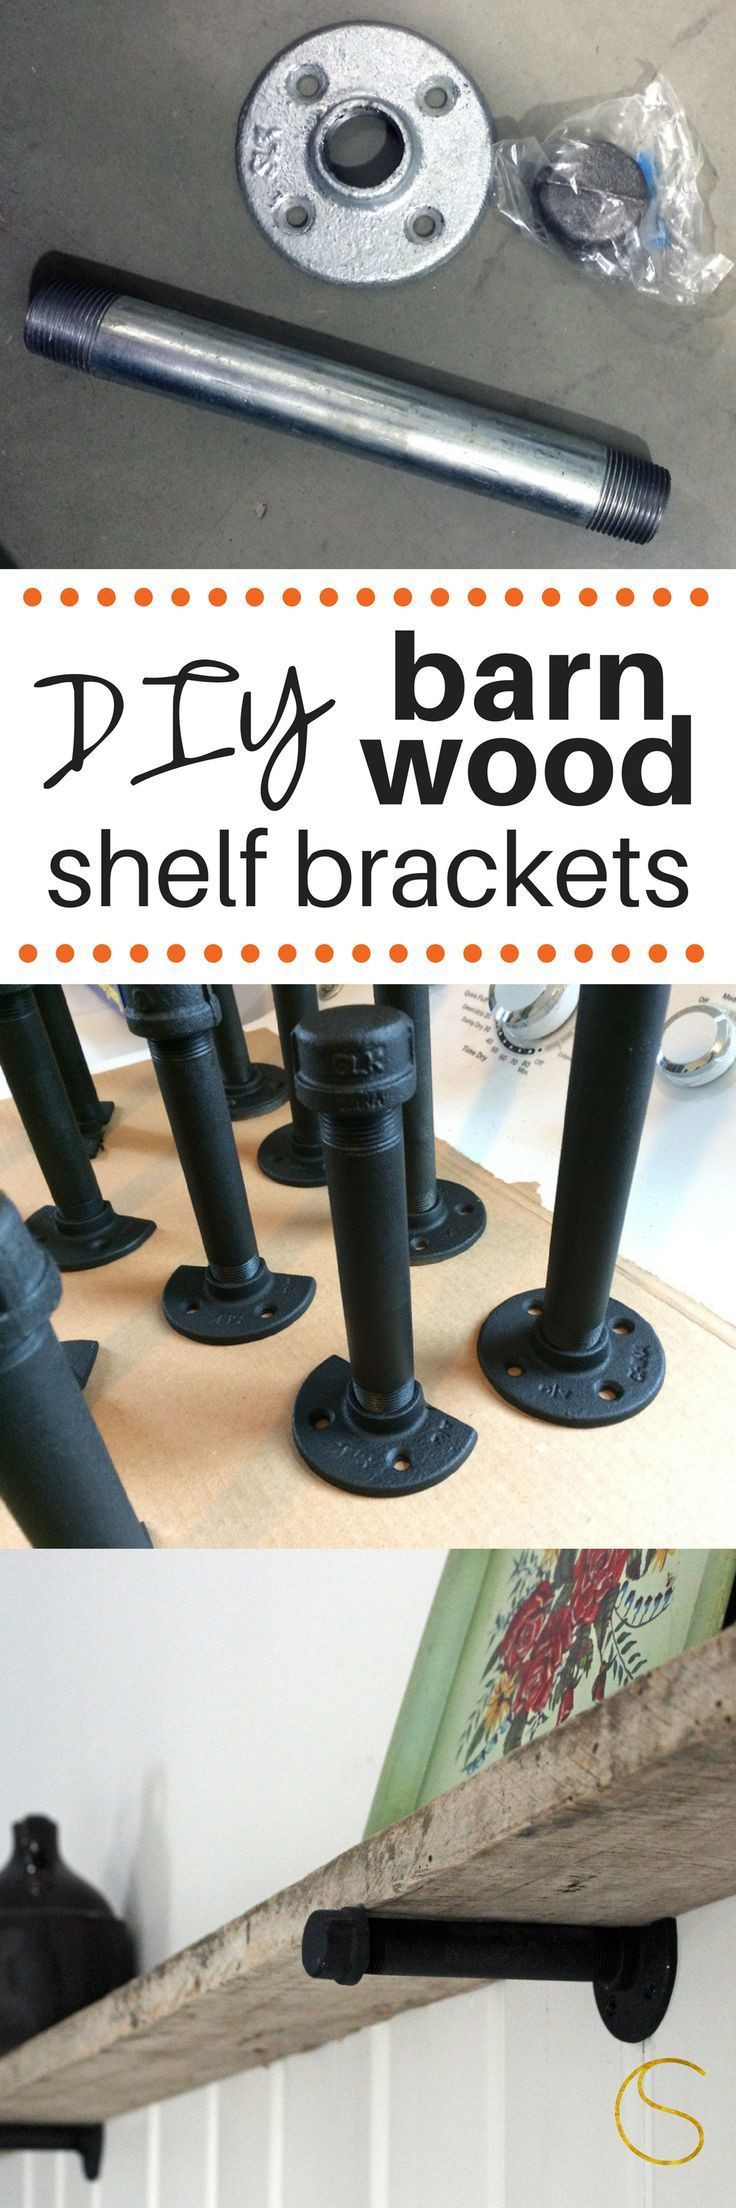 Best ideas about DIY Barn Wood Shelves . Save or Pin 15 Brilliant DIY Shelves You Can Build Yourself Homelovr Now.